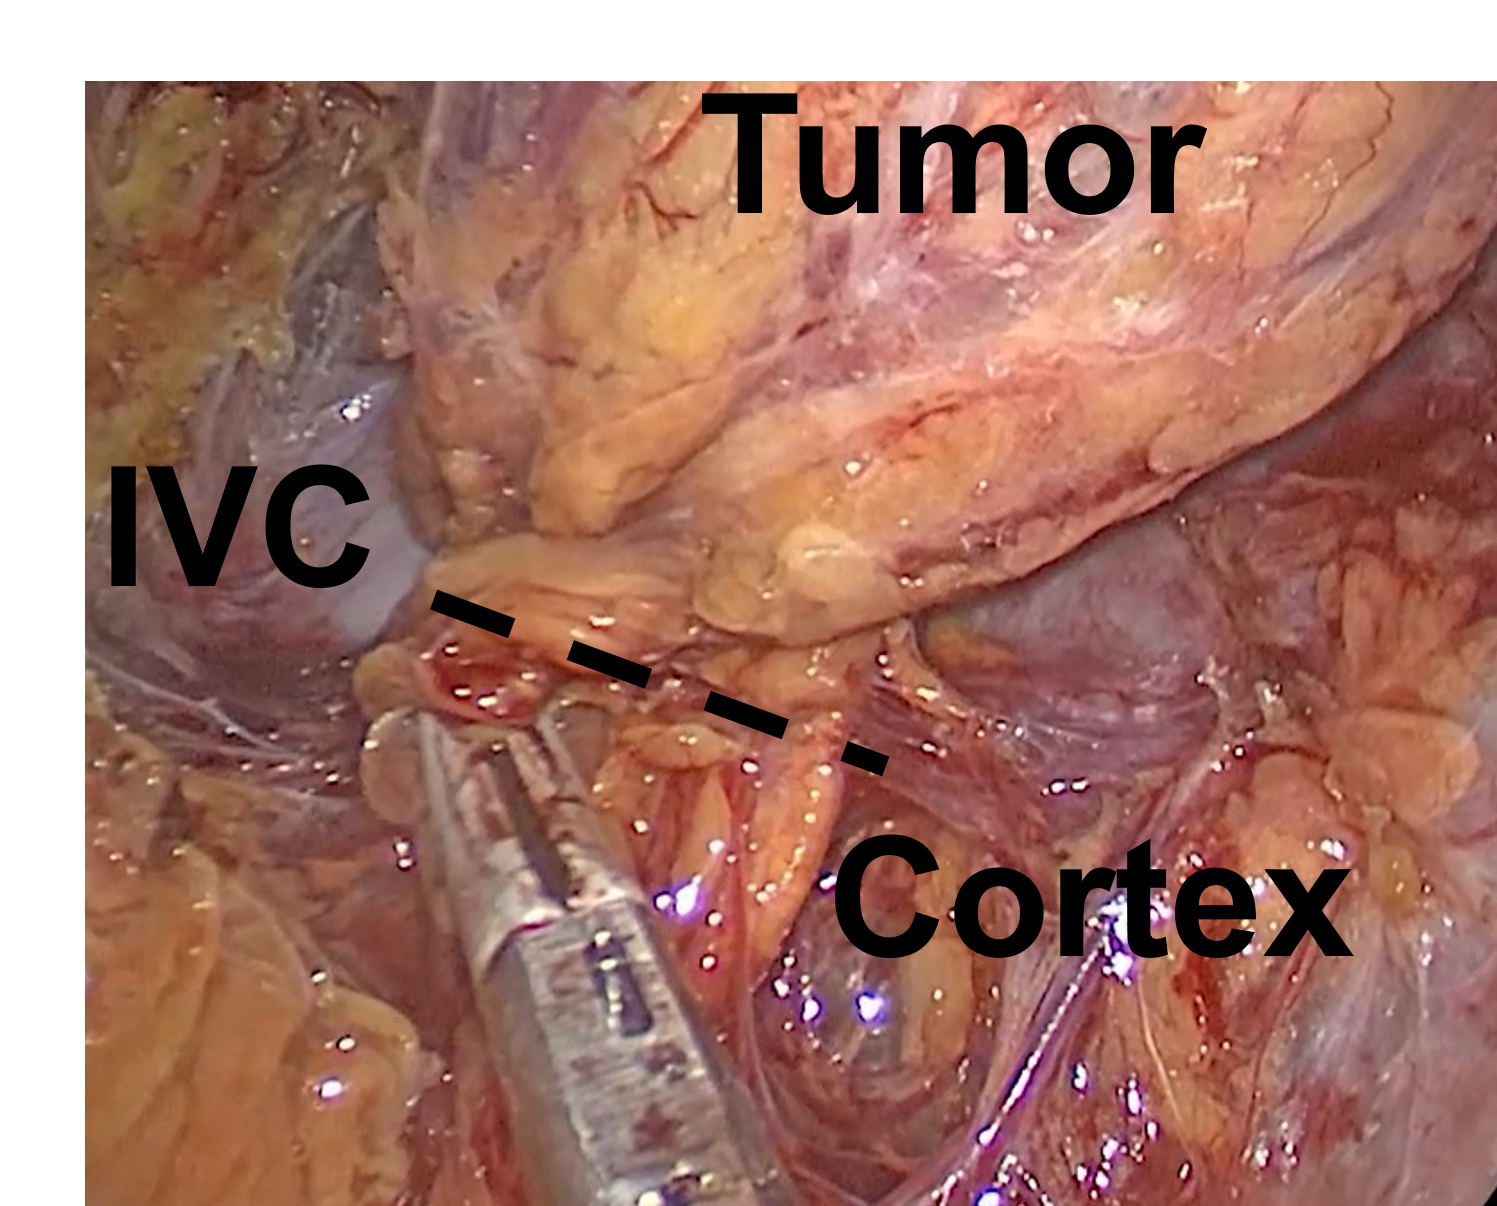 Partial Cortical-Sparing Adrenalectomy Performed via Right Mini Back Scope Adrenalectomy (MBSA). The tumor specimen is divided at the dotted line, removing the tumor, but preserving the normal cortex and the inferior vena cava (IVC).